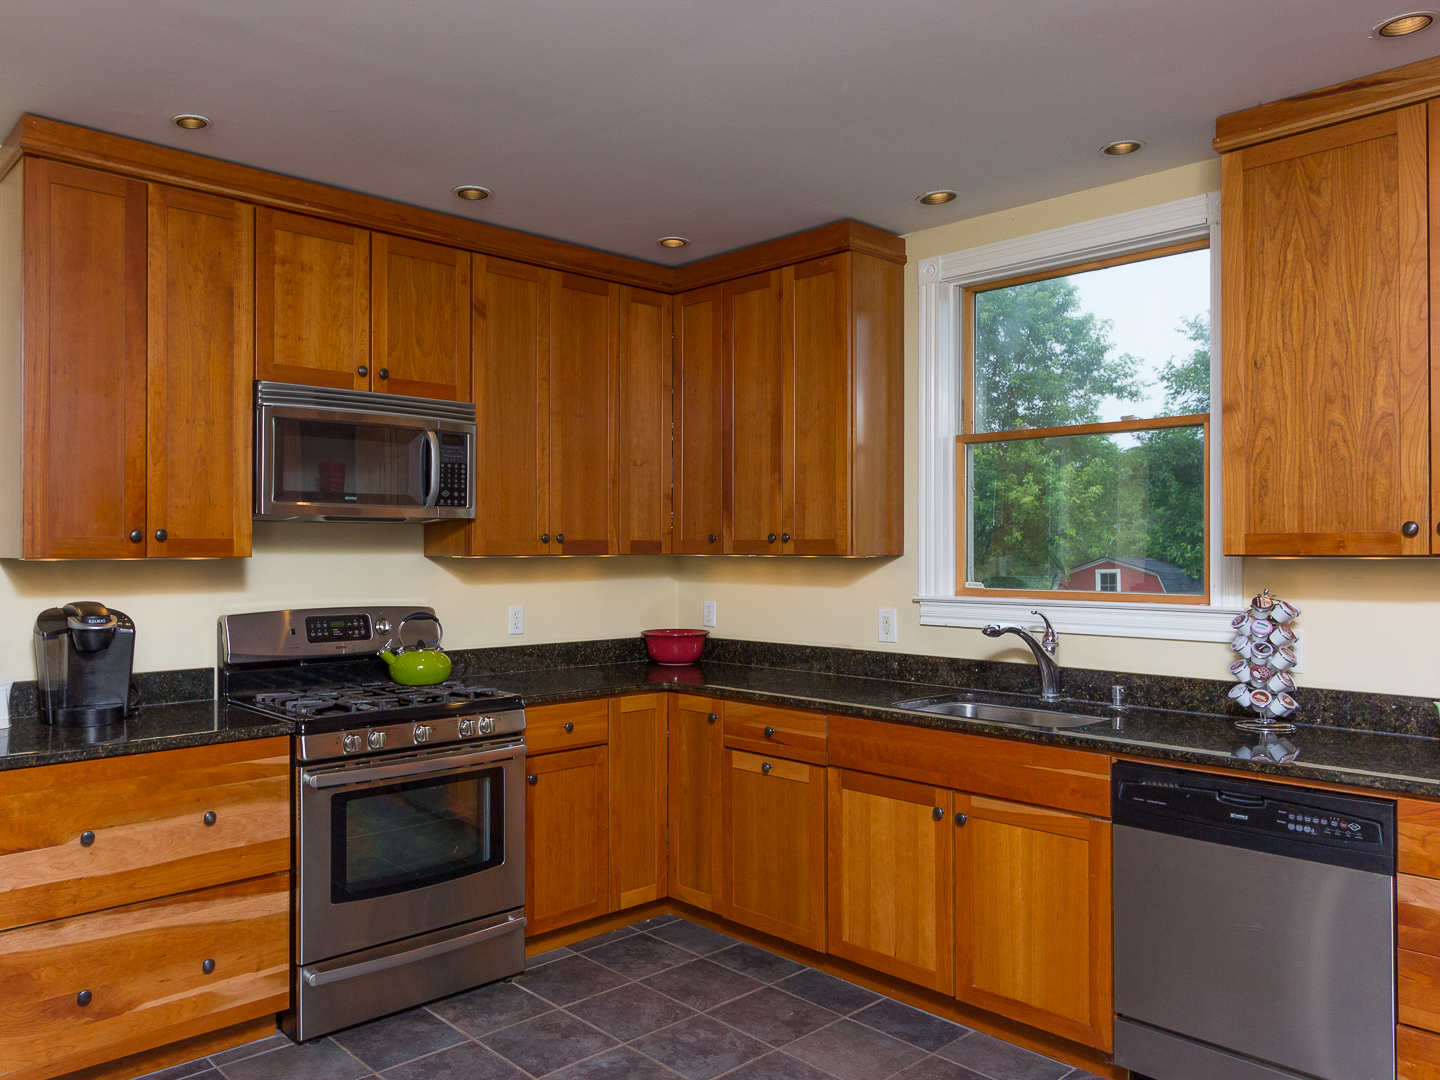 Kitchen Photos-274